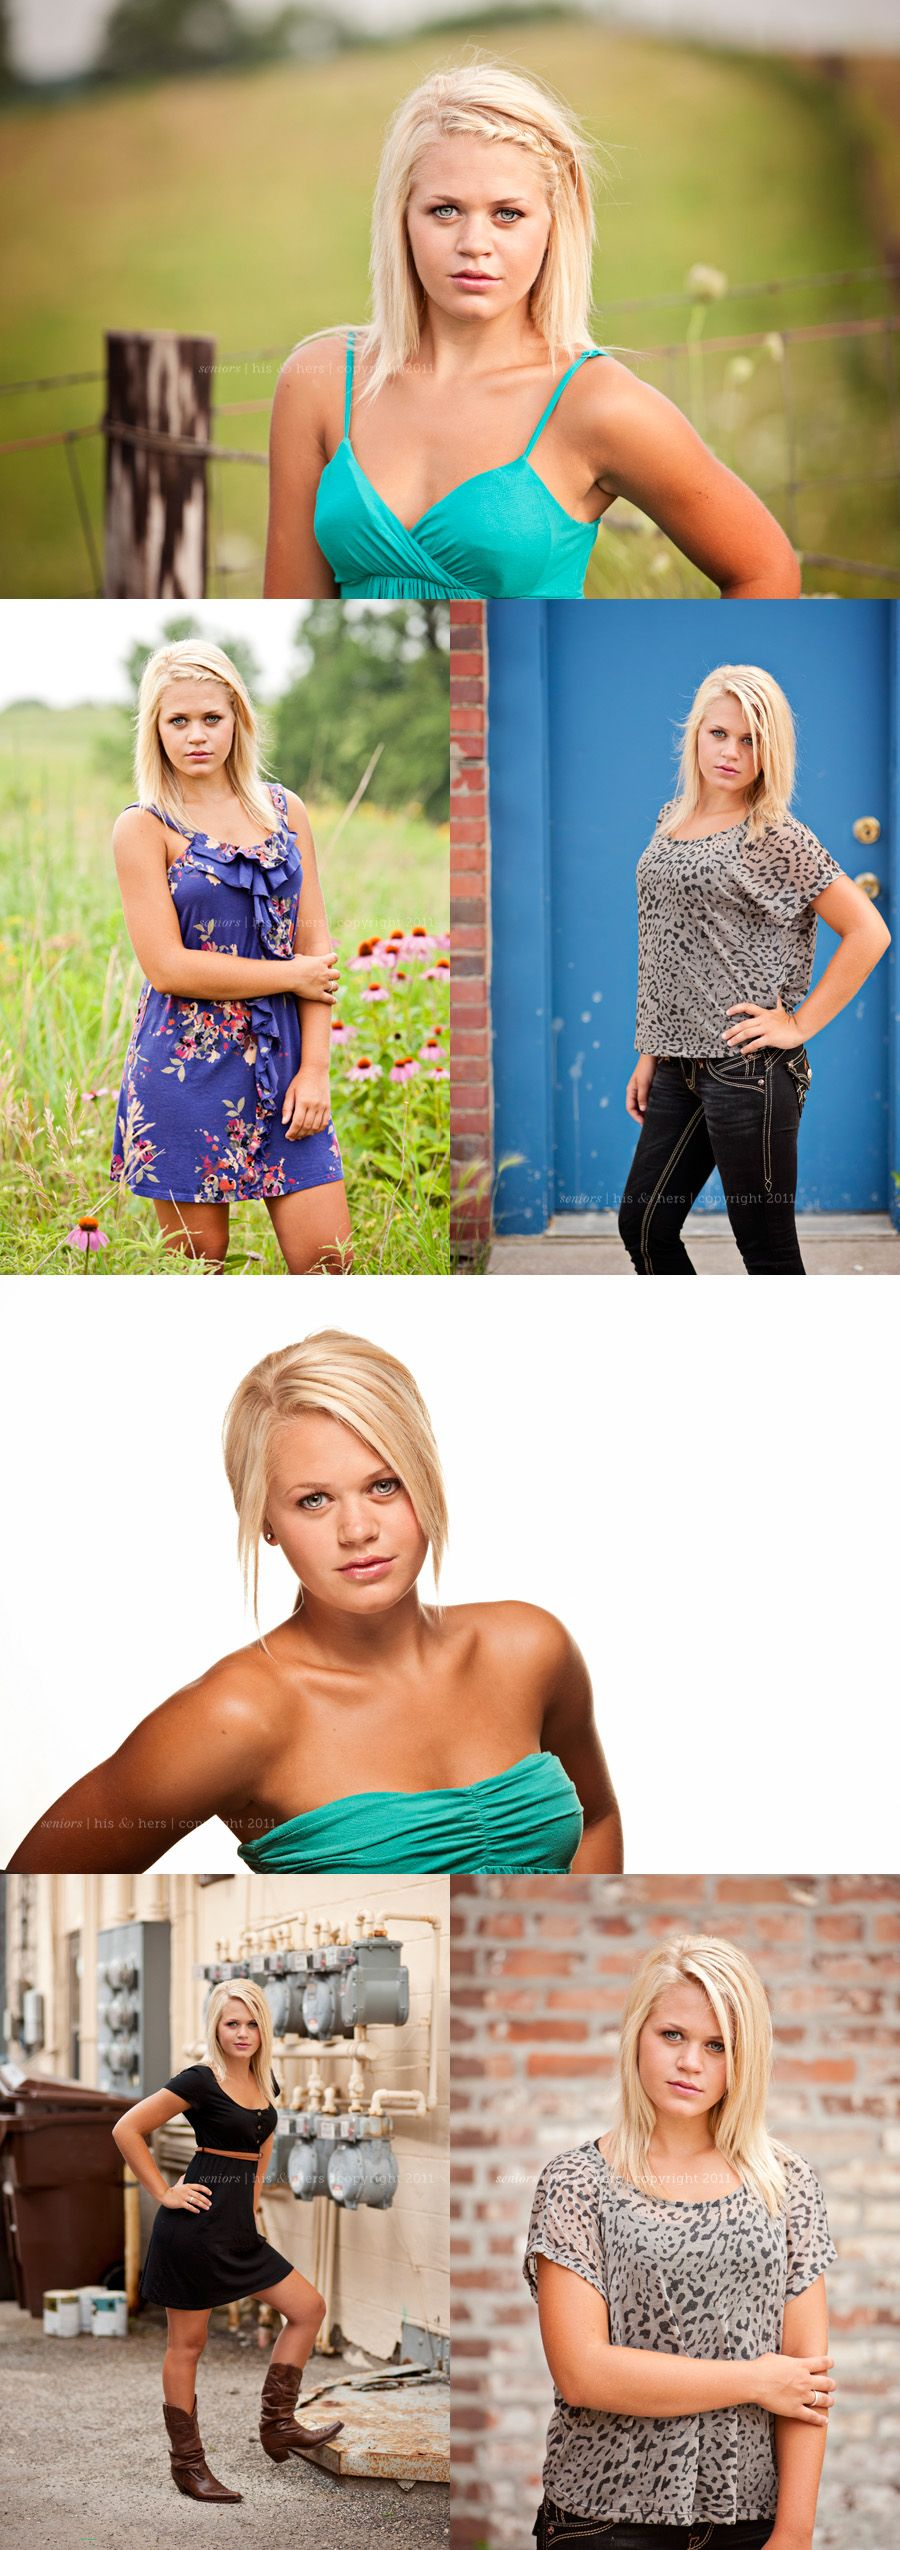 Morgan, Class of 2012 | Des Moines, Iowa Senior Photos Portrait Photographer